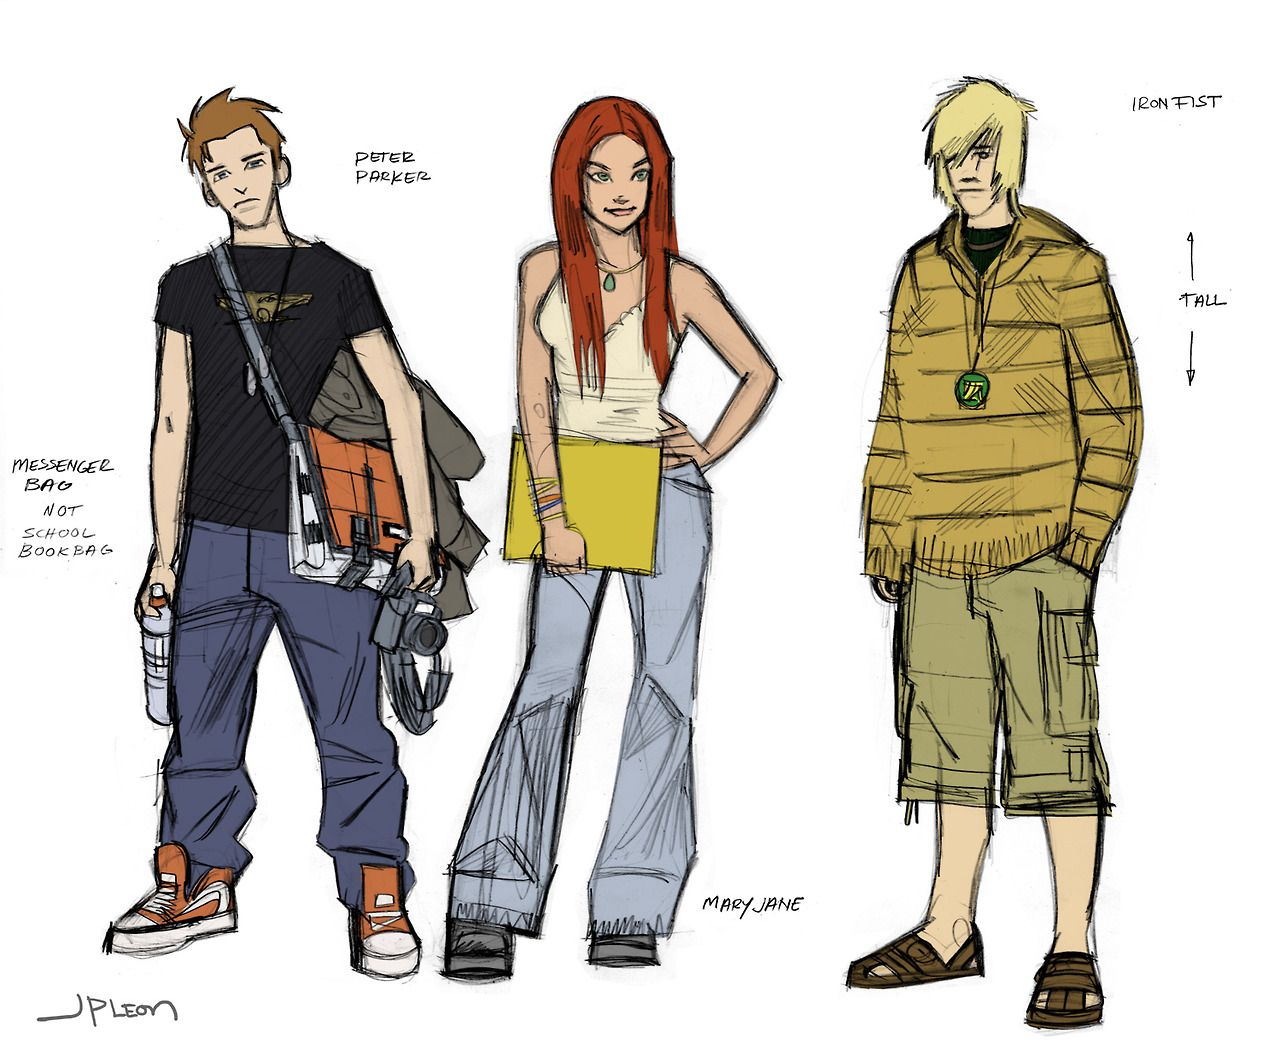 Peter Parker, Mary Jane, and Iron Fist by John Paul Leon *